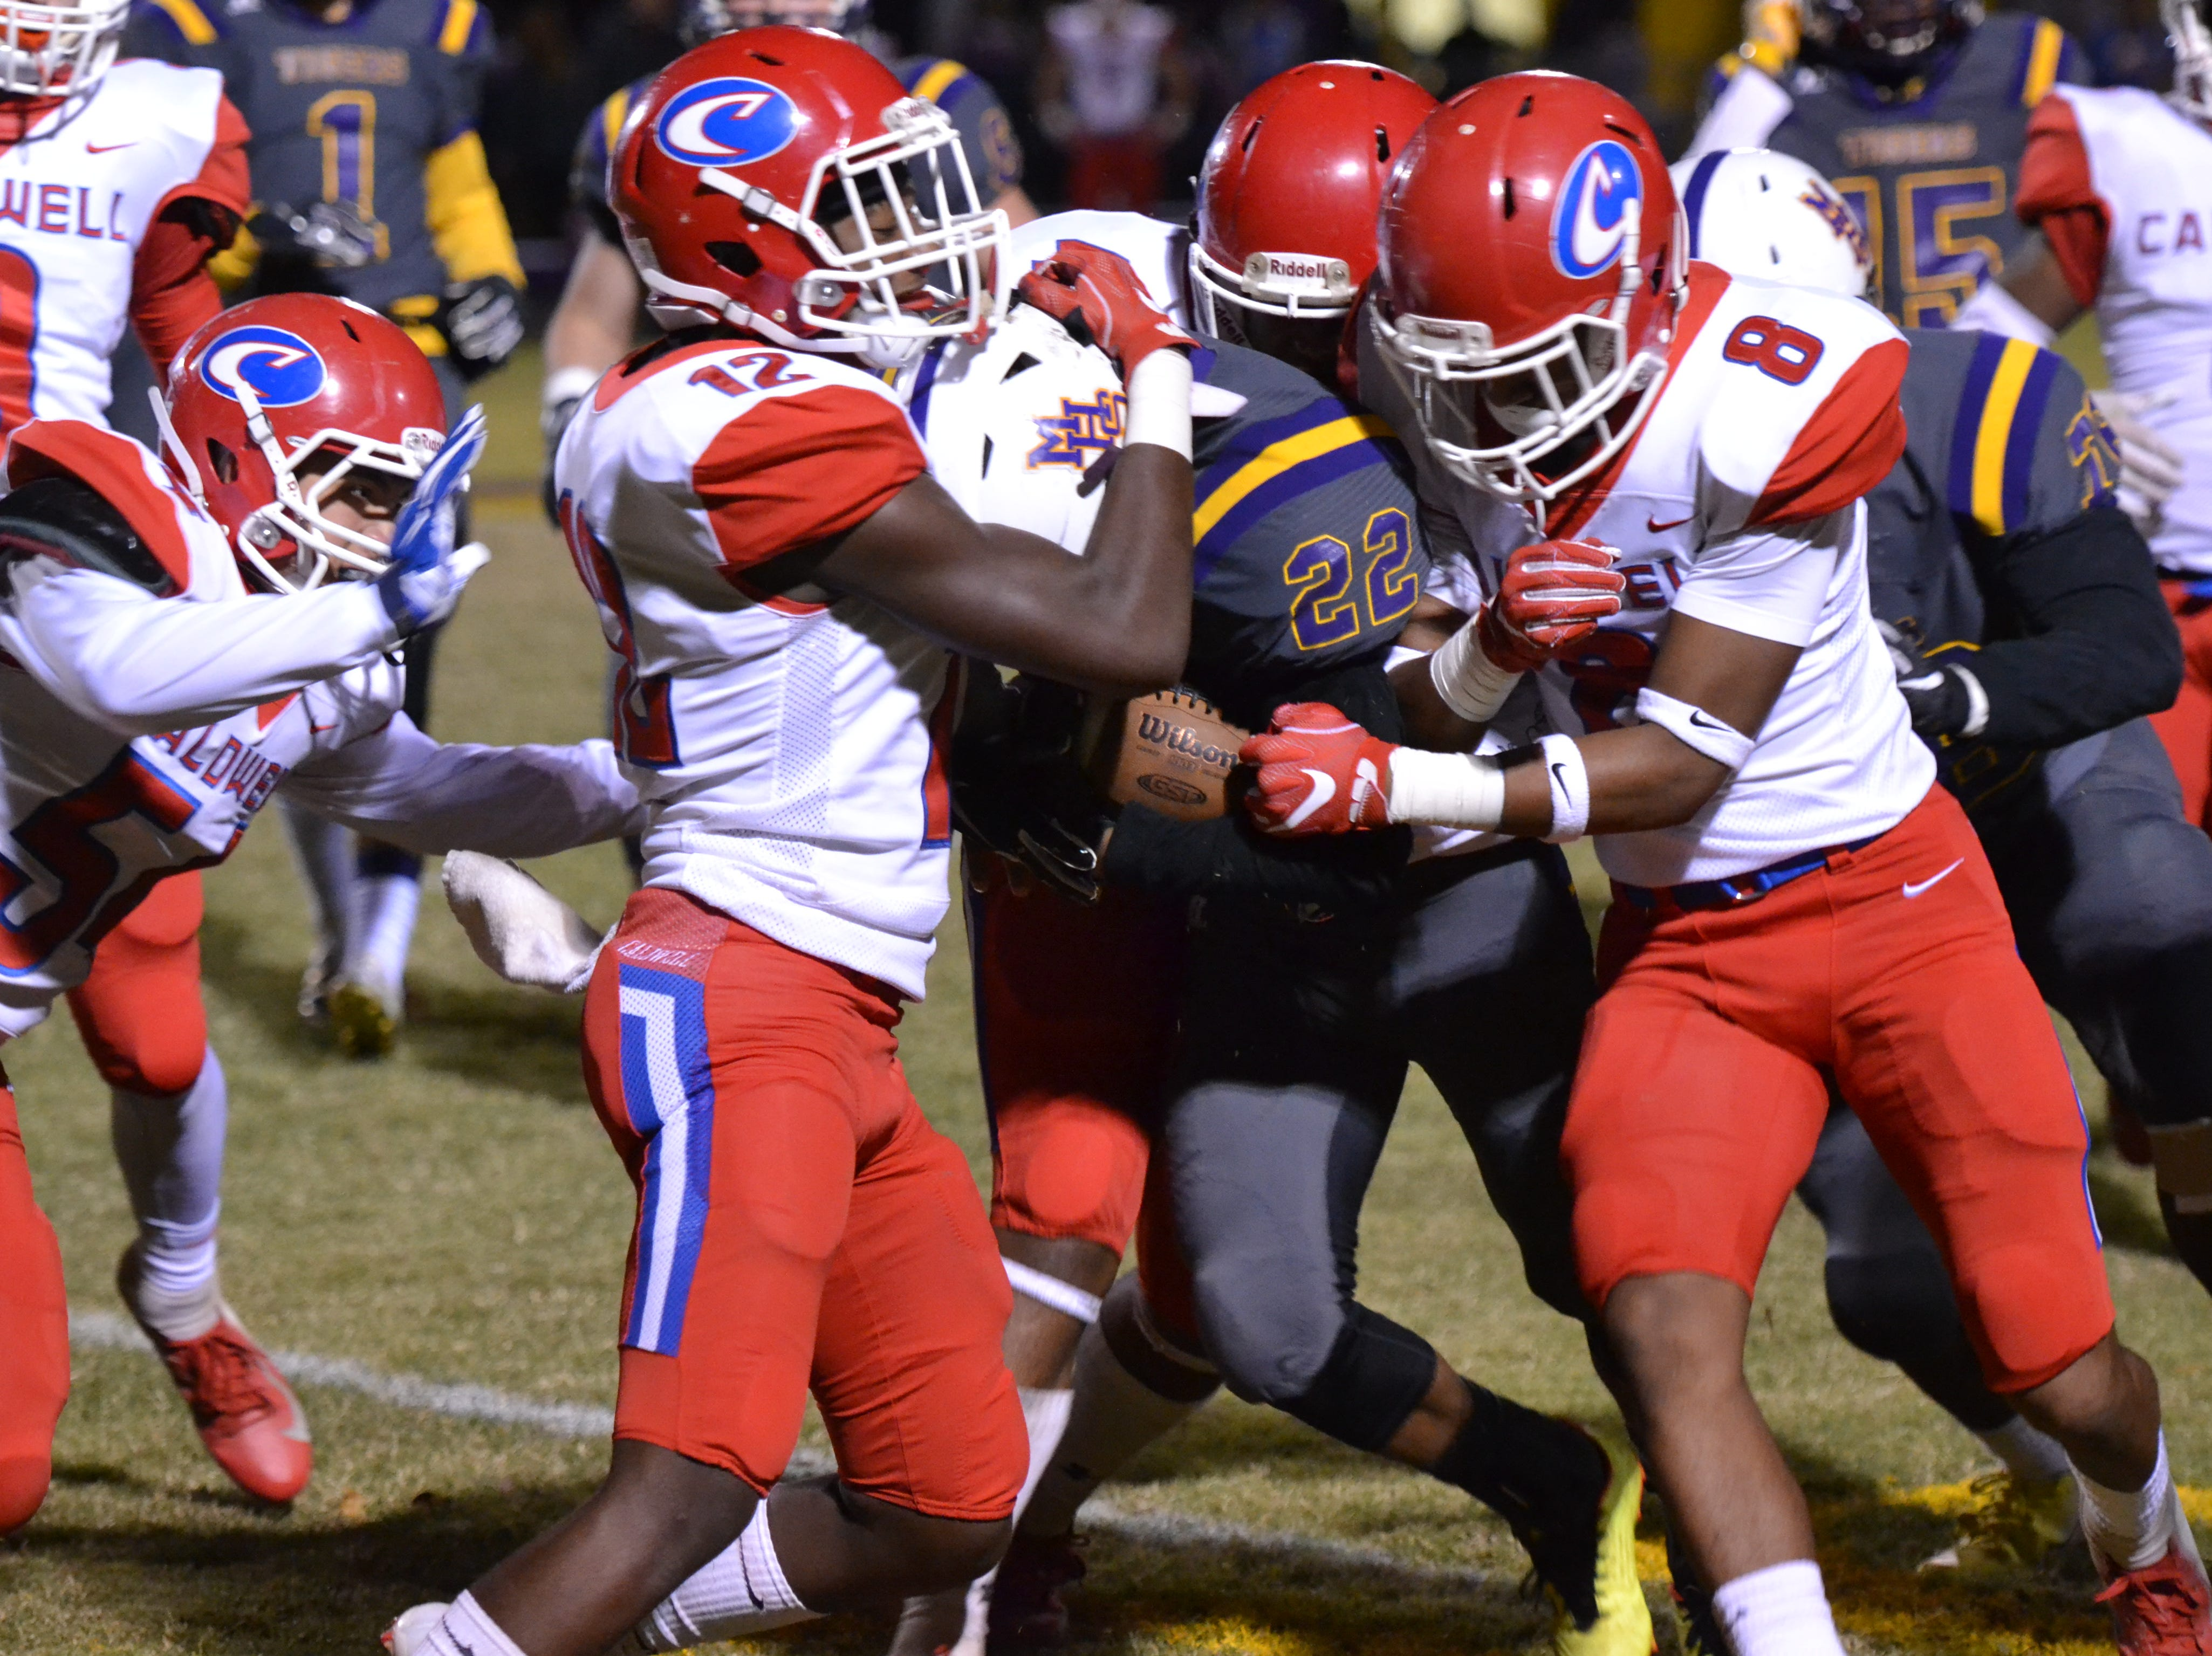 Caldwell defenders Eddie Turner (12) and Kenneth Harris (8) converge on Marksville's Kameron Washington (22). Marksville and Caldwell met in the regular season finale Friday night with Caldwell edging Marksville 13-8.